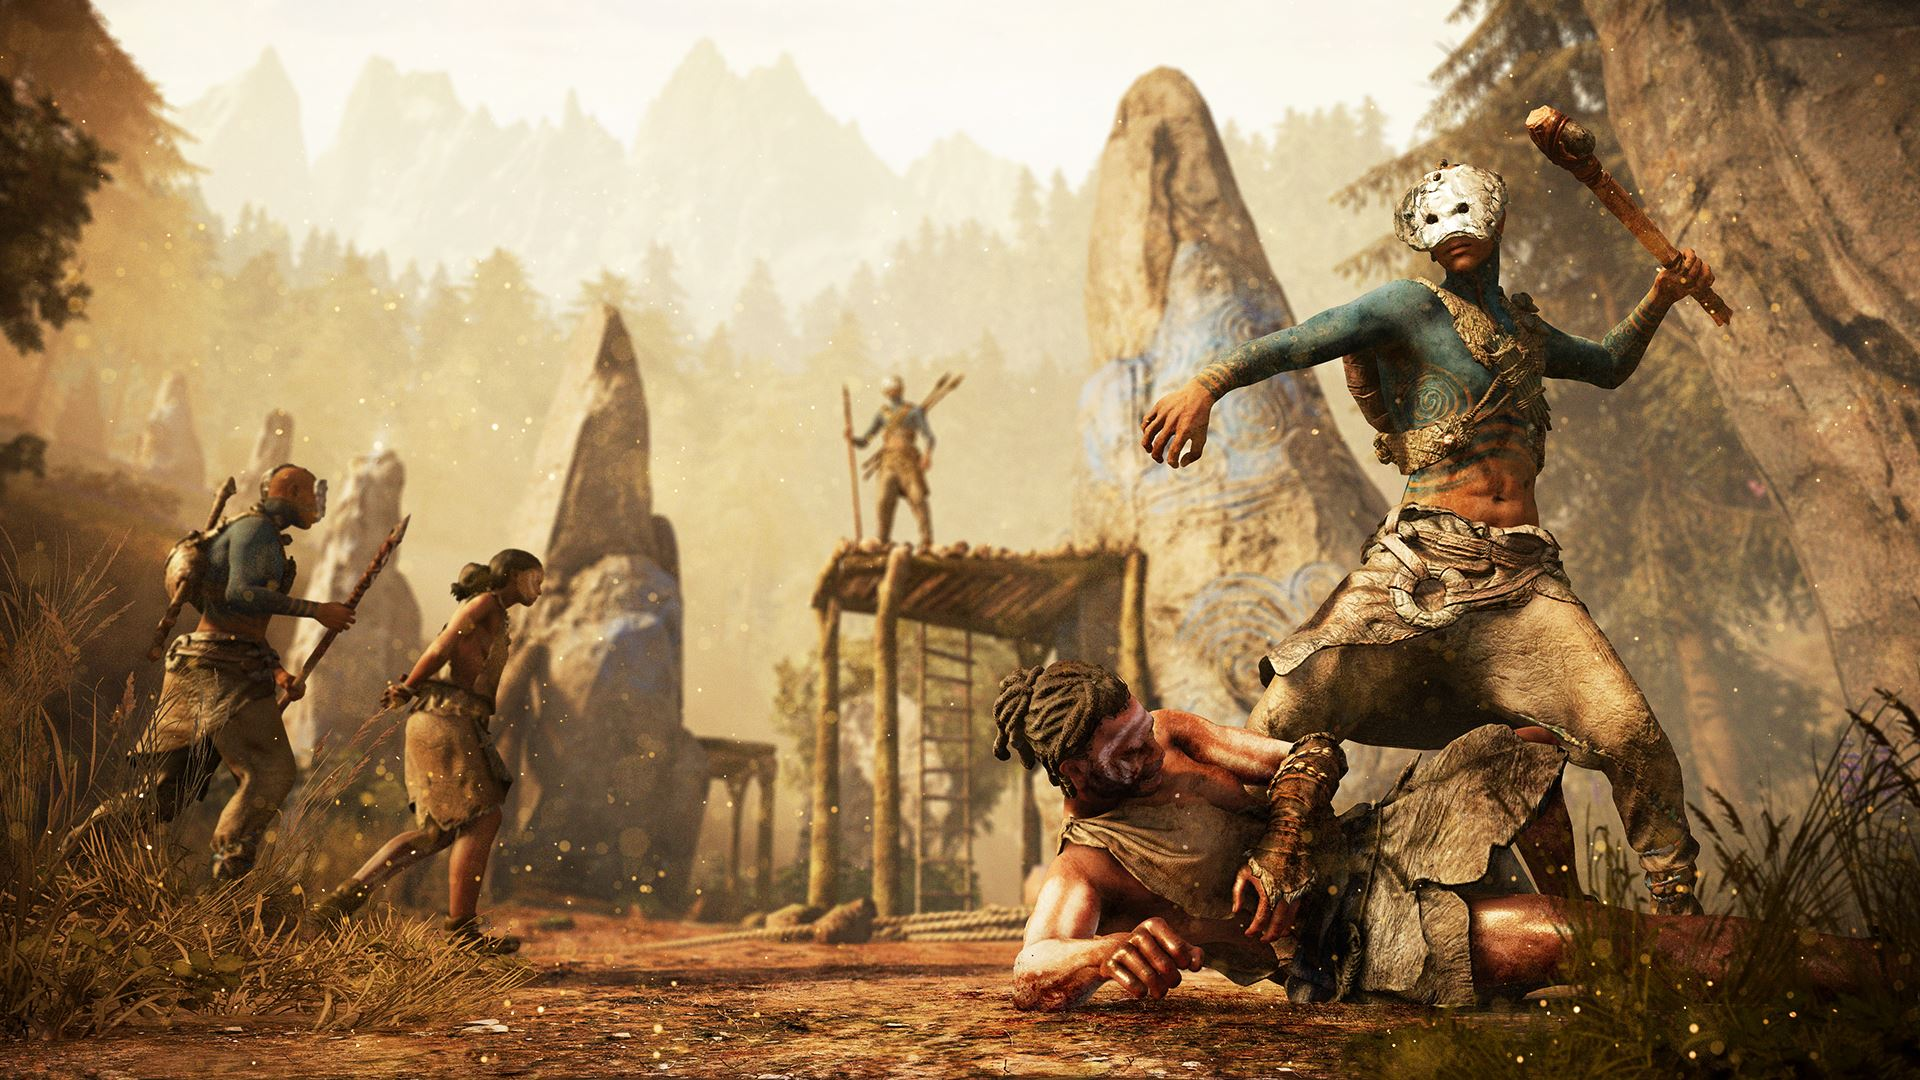 Far Cry Primal: Apex Edition [v 1.3.3 + DLC] (2016) PC - Скриншот 2